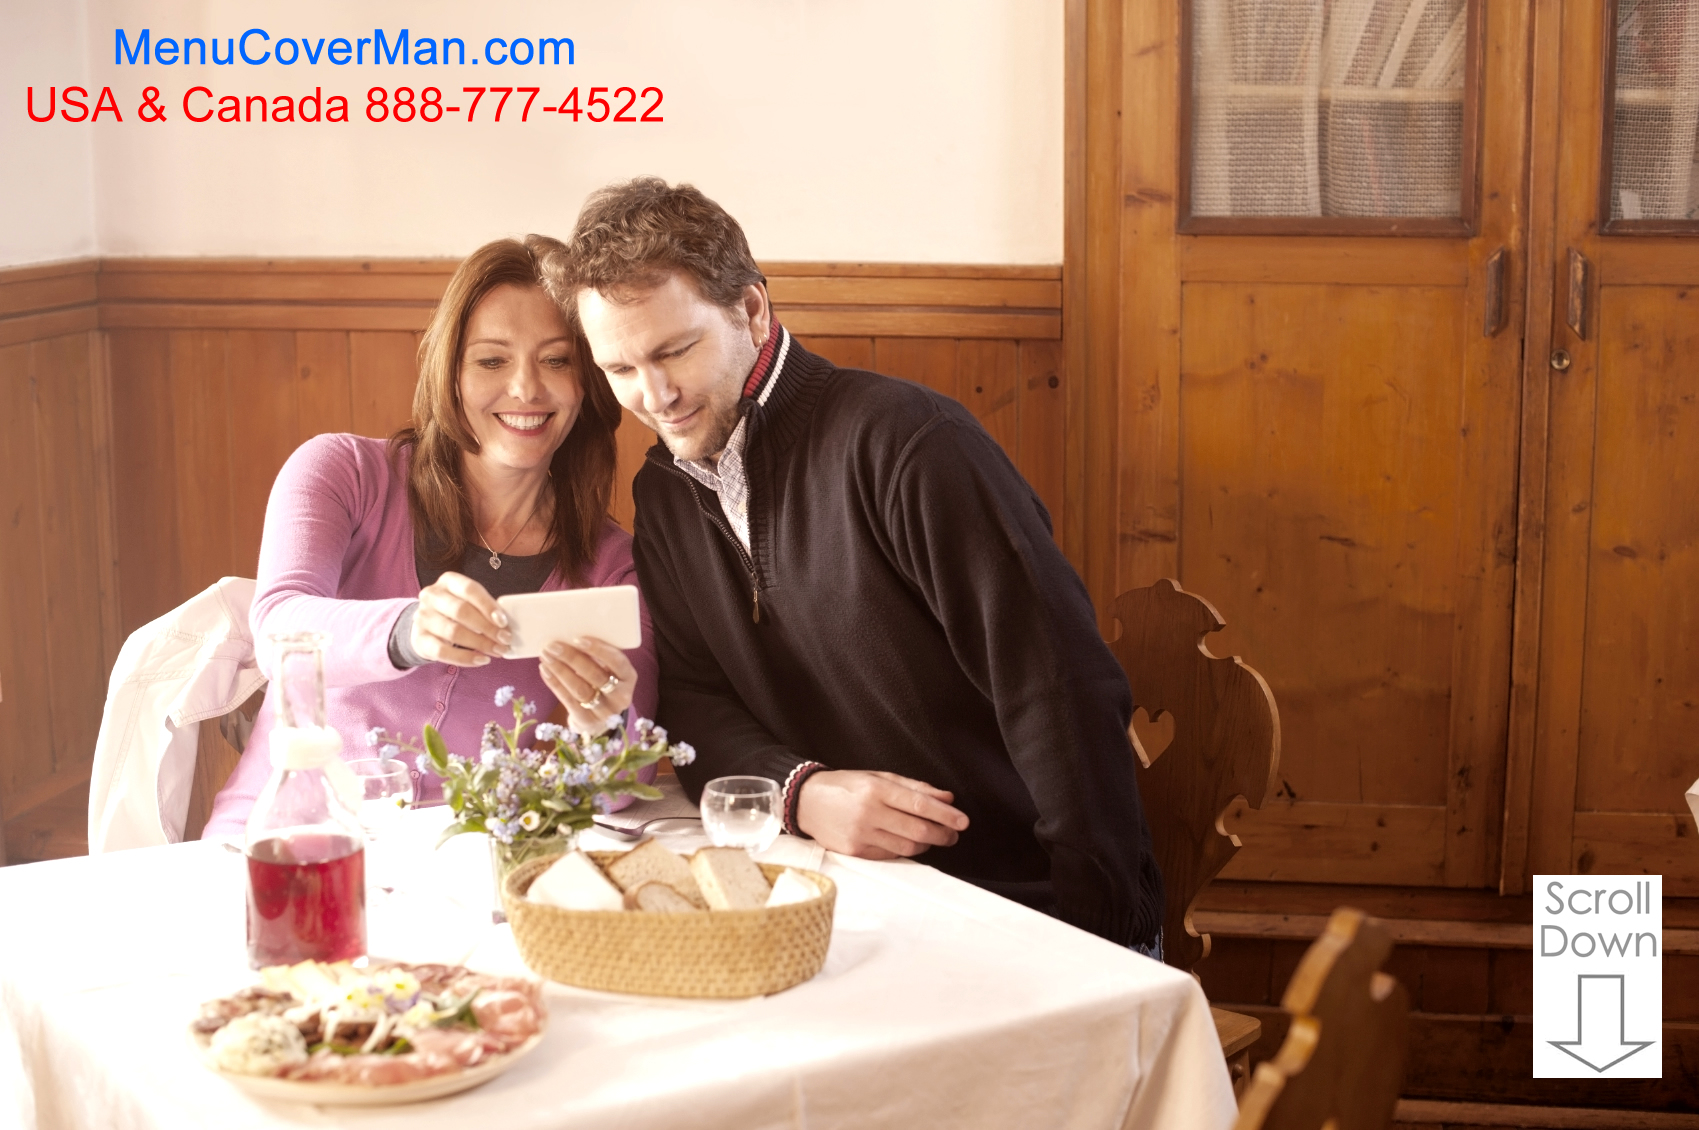 Happy couple ordering from the Pinehurst Menu Covers selection at Menucoverman.com.